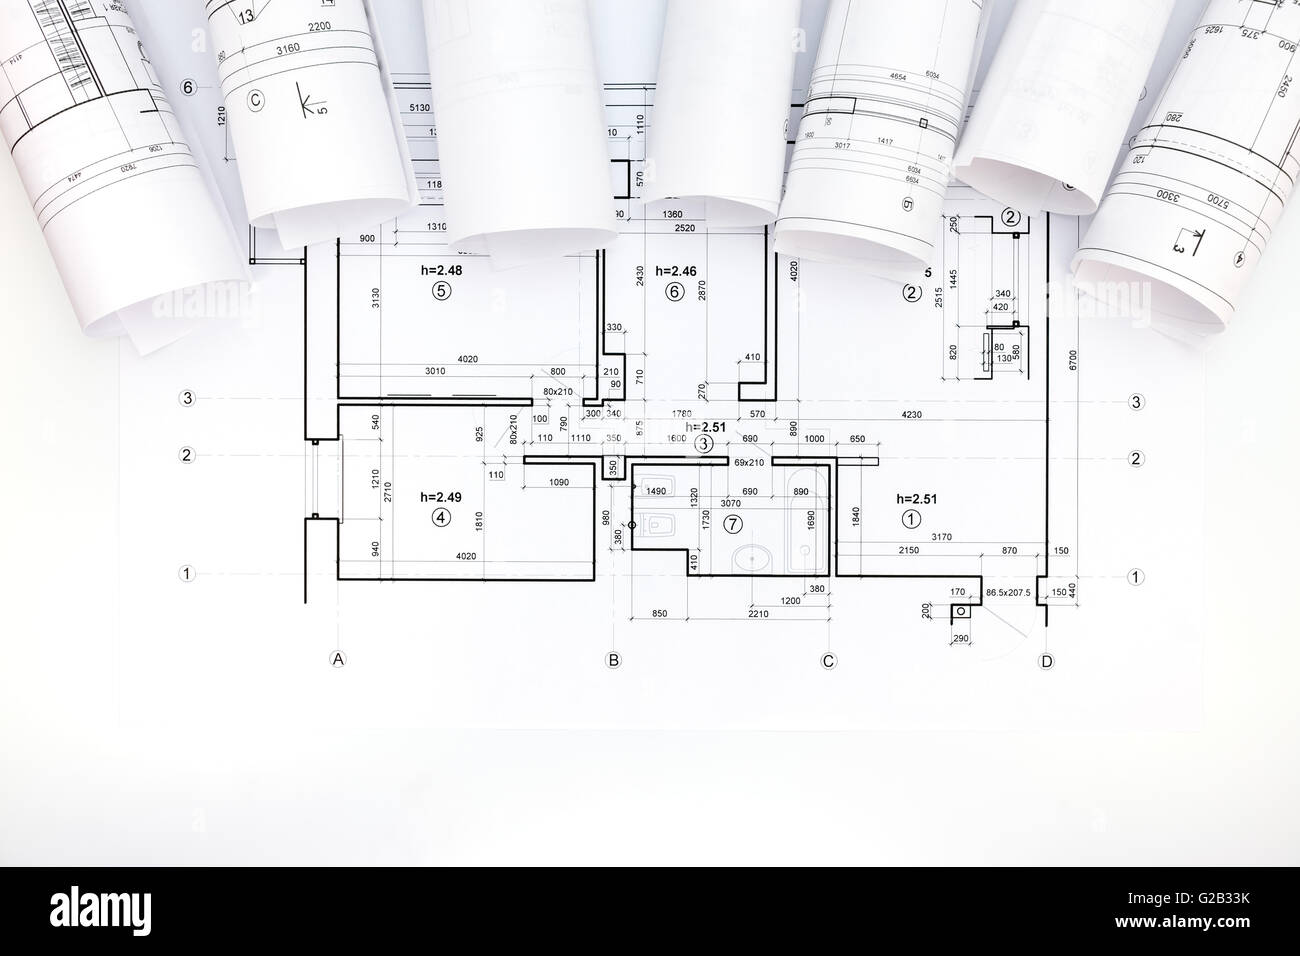 Architects workspace with rolled construction plans and blueprint architects workspace with rolled construction plans and blueprint malvernweather Choice Image